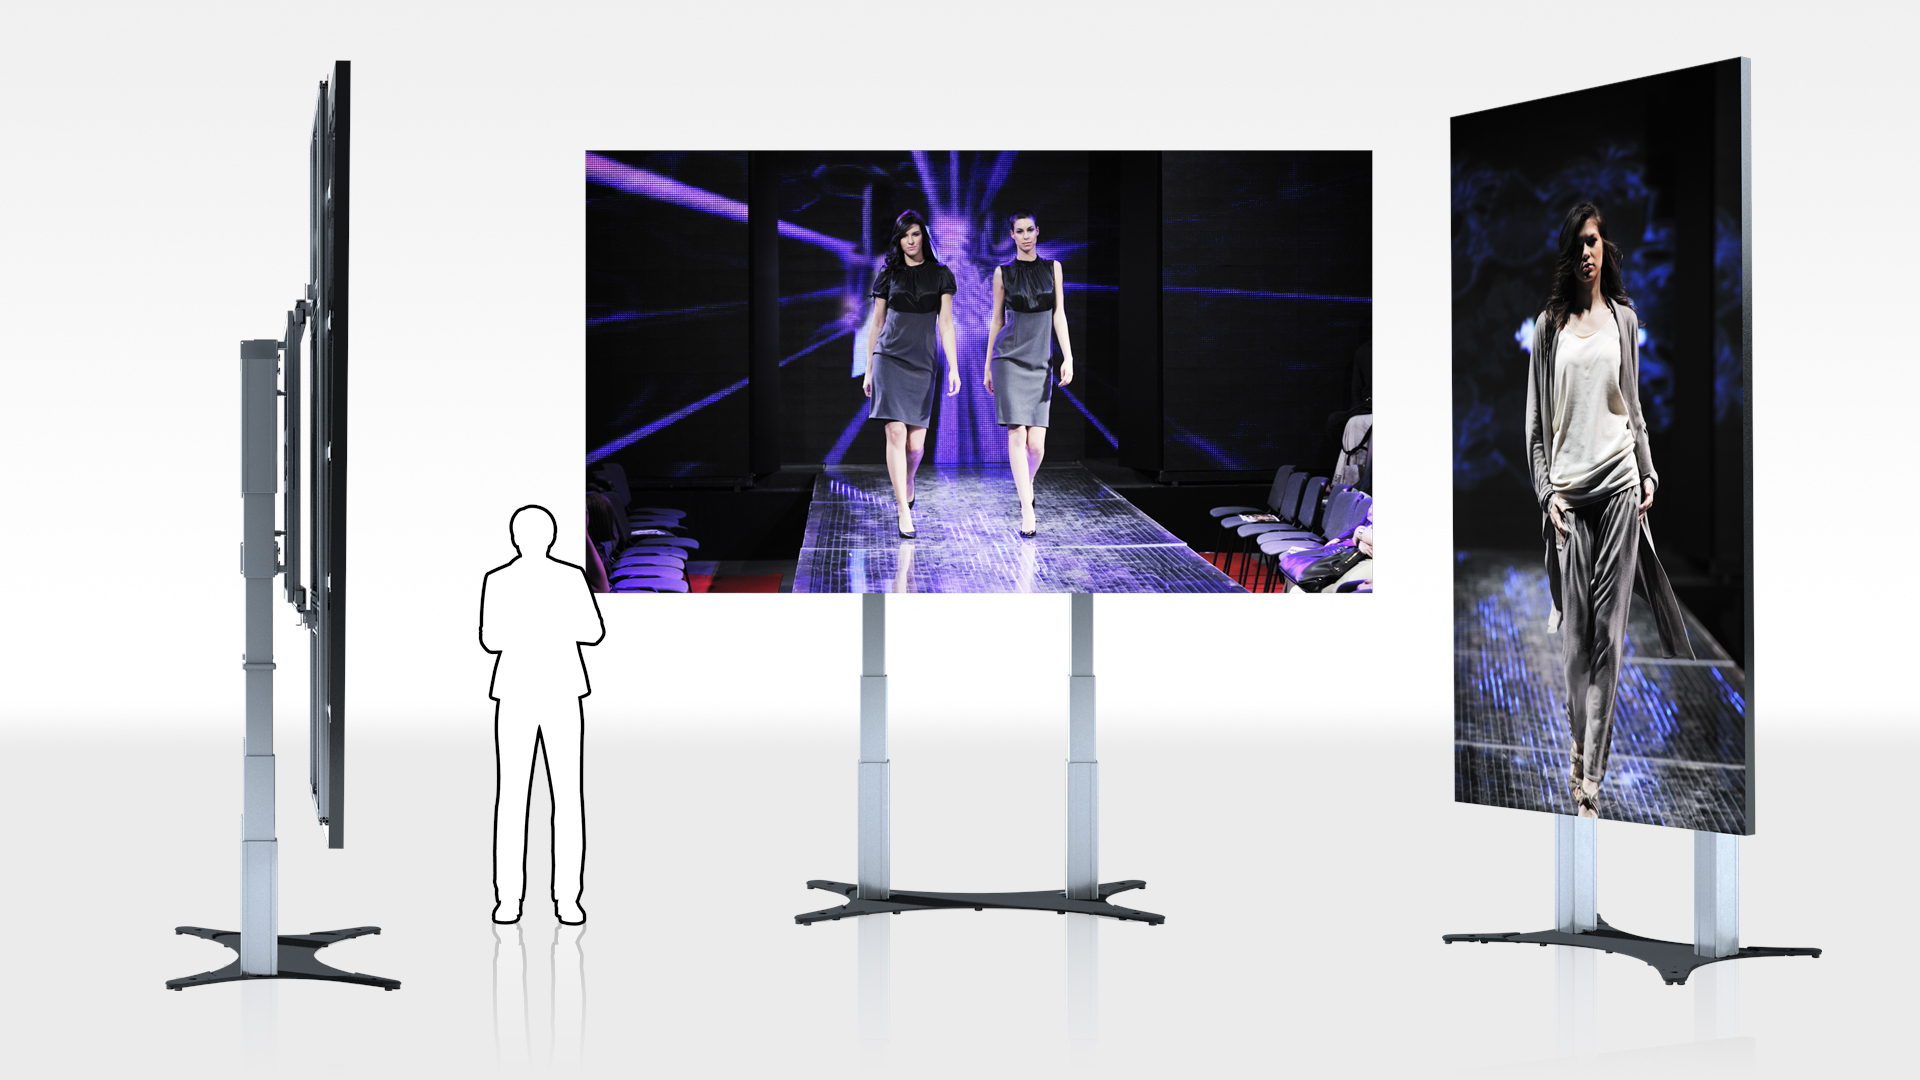 ScreenLifter MOBILE LED 165 für OPTOMA QUADZILLA FHDQ165 LED-Display